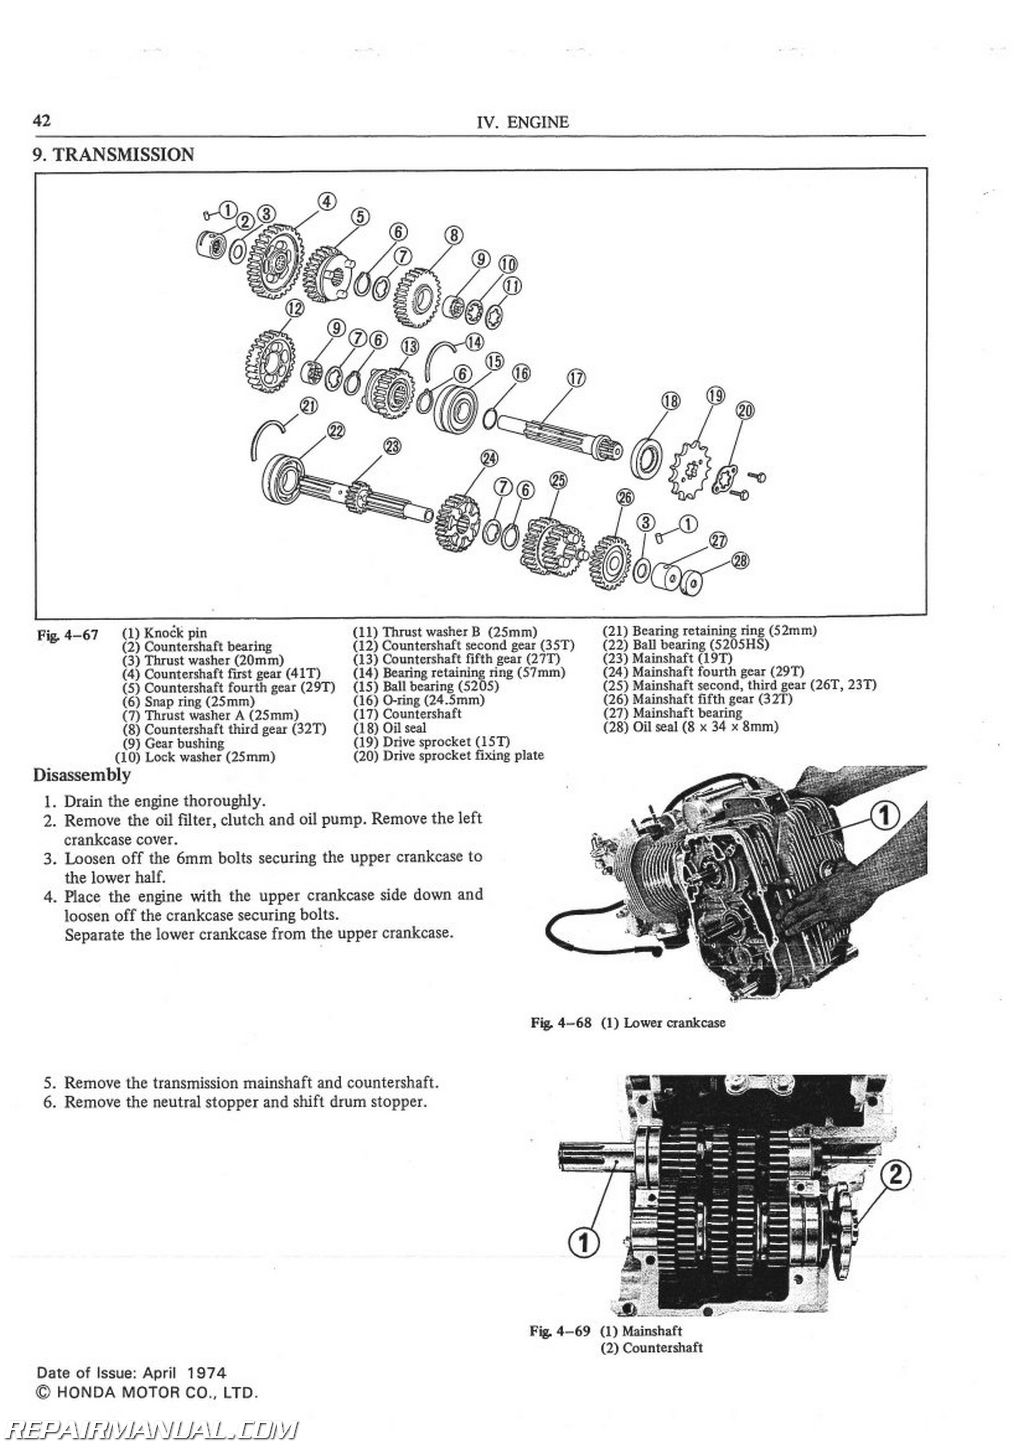 260153315954545497 further Honda Rebel 250 Wiring Diagram as well 2000 Mazda Millenia Fuel Pump Location together with Autometer Tach Install besides Honda Unicorn Wiring Diagram Manual. on honda motorcycle repair guide